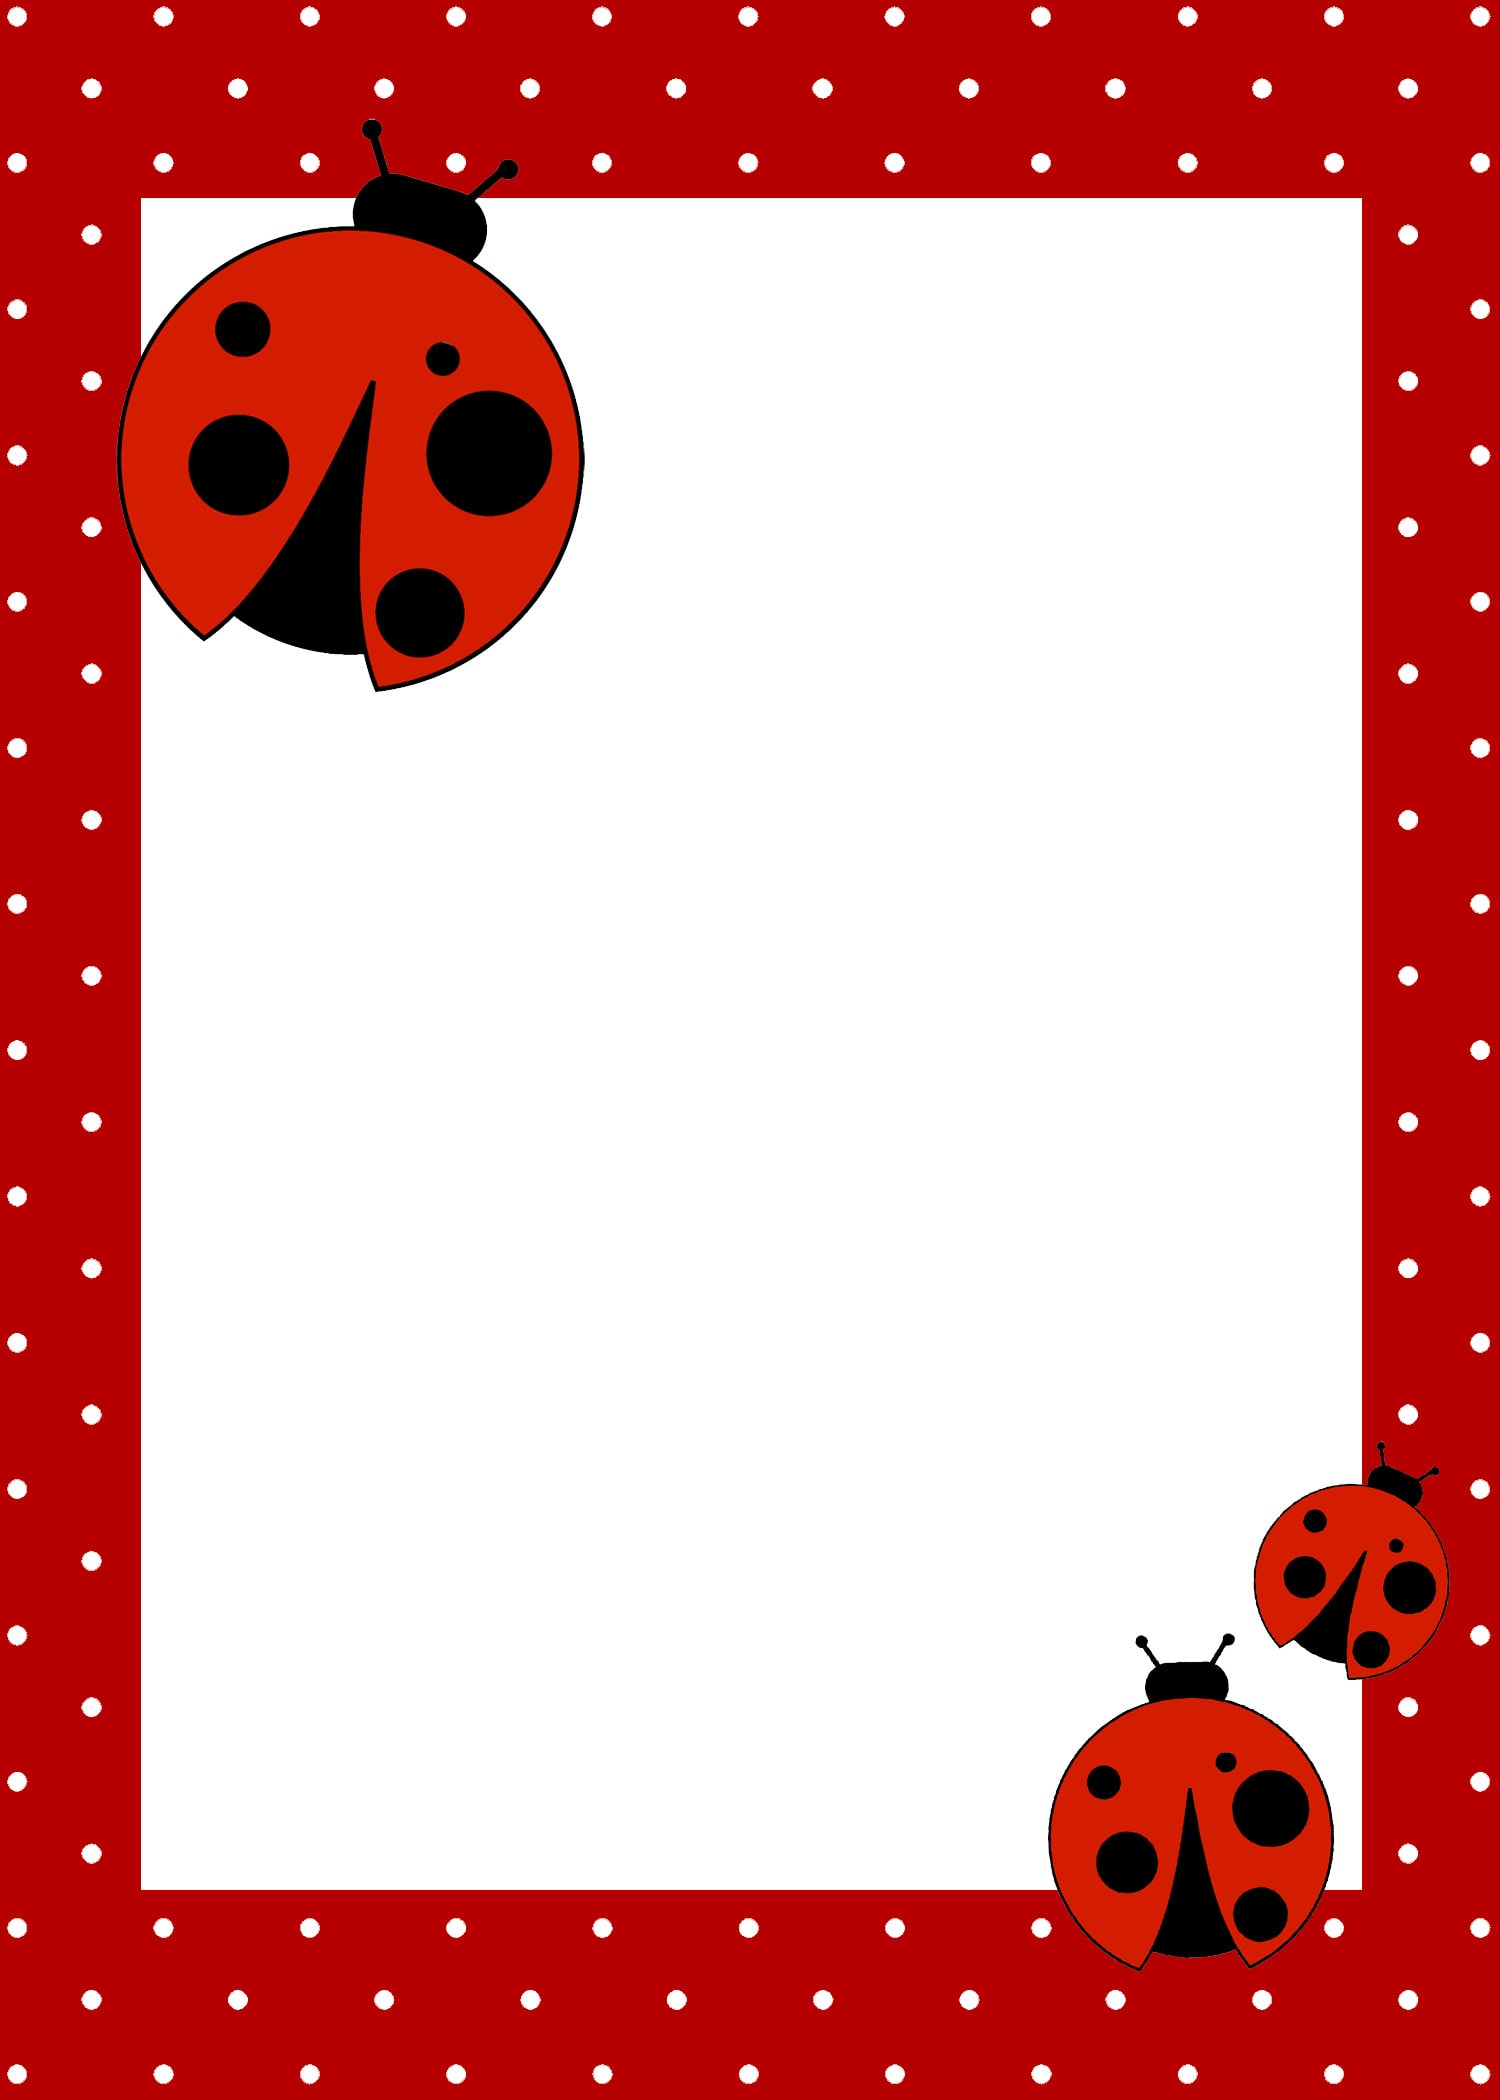 ladybug birthday invitation templates free - Kubre.euforic.co